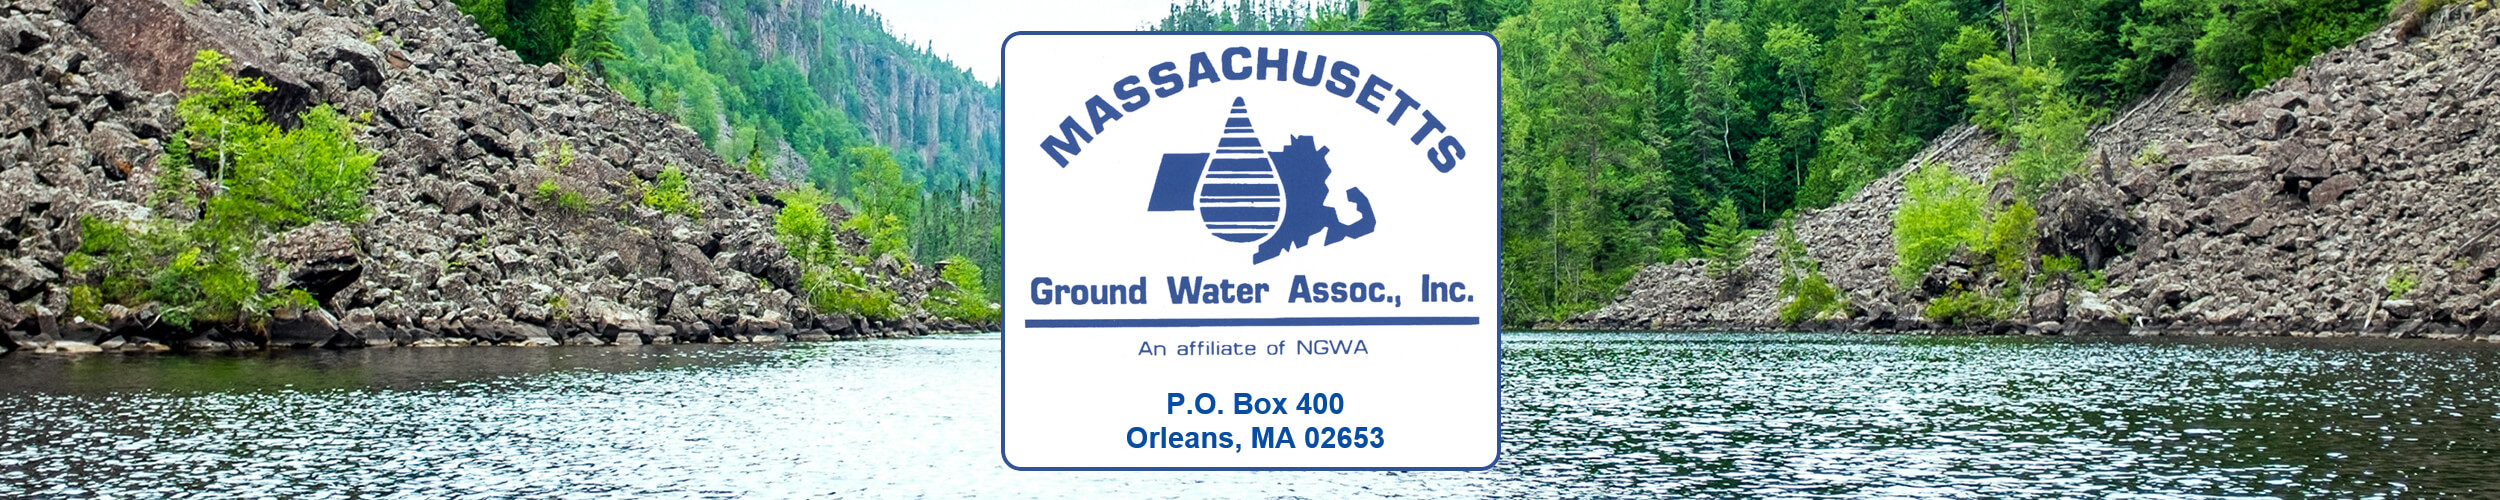 Massachusetts Ground Water Association